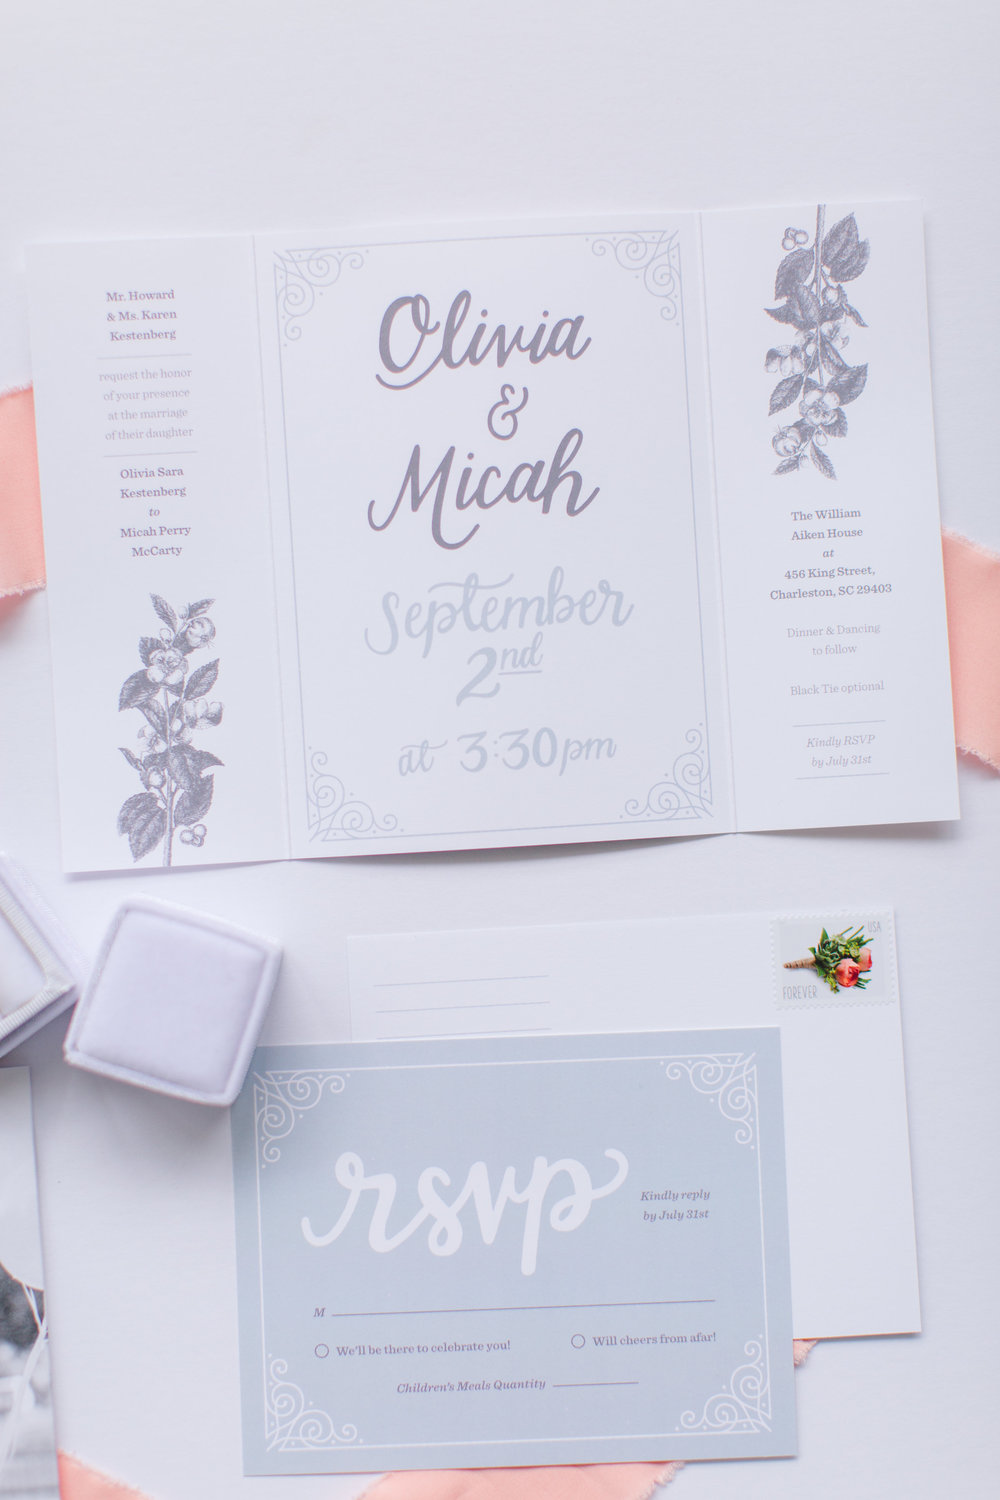 Thank you for designing us a one of a kind invitation for our wedding. Jess is incredibly easy to work with, talented, and professional. - Olivia & Micah, married 2018